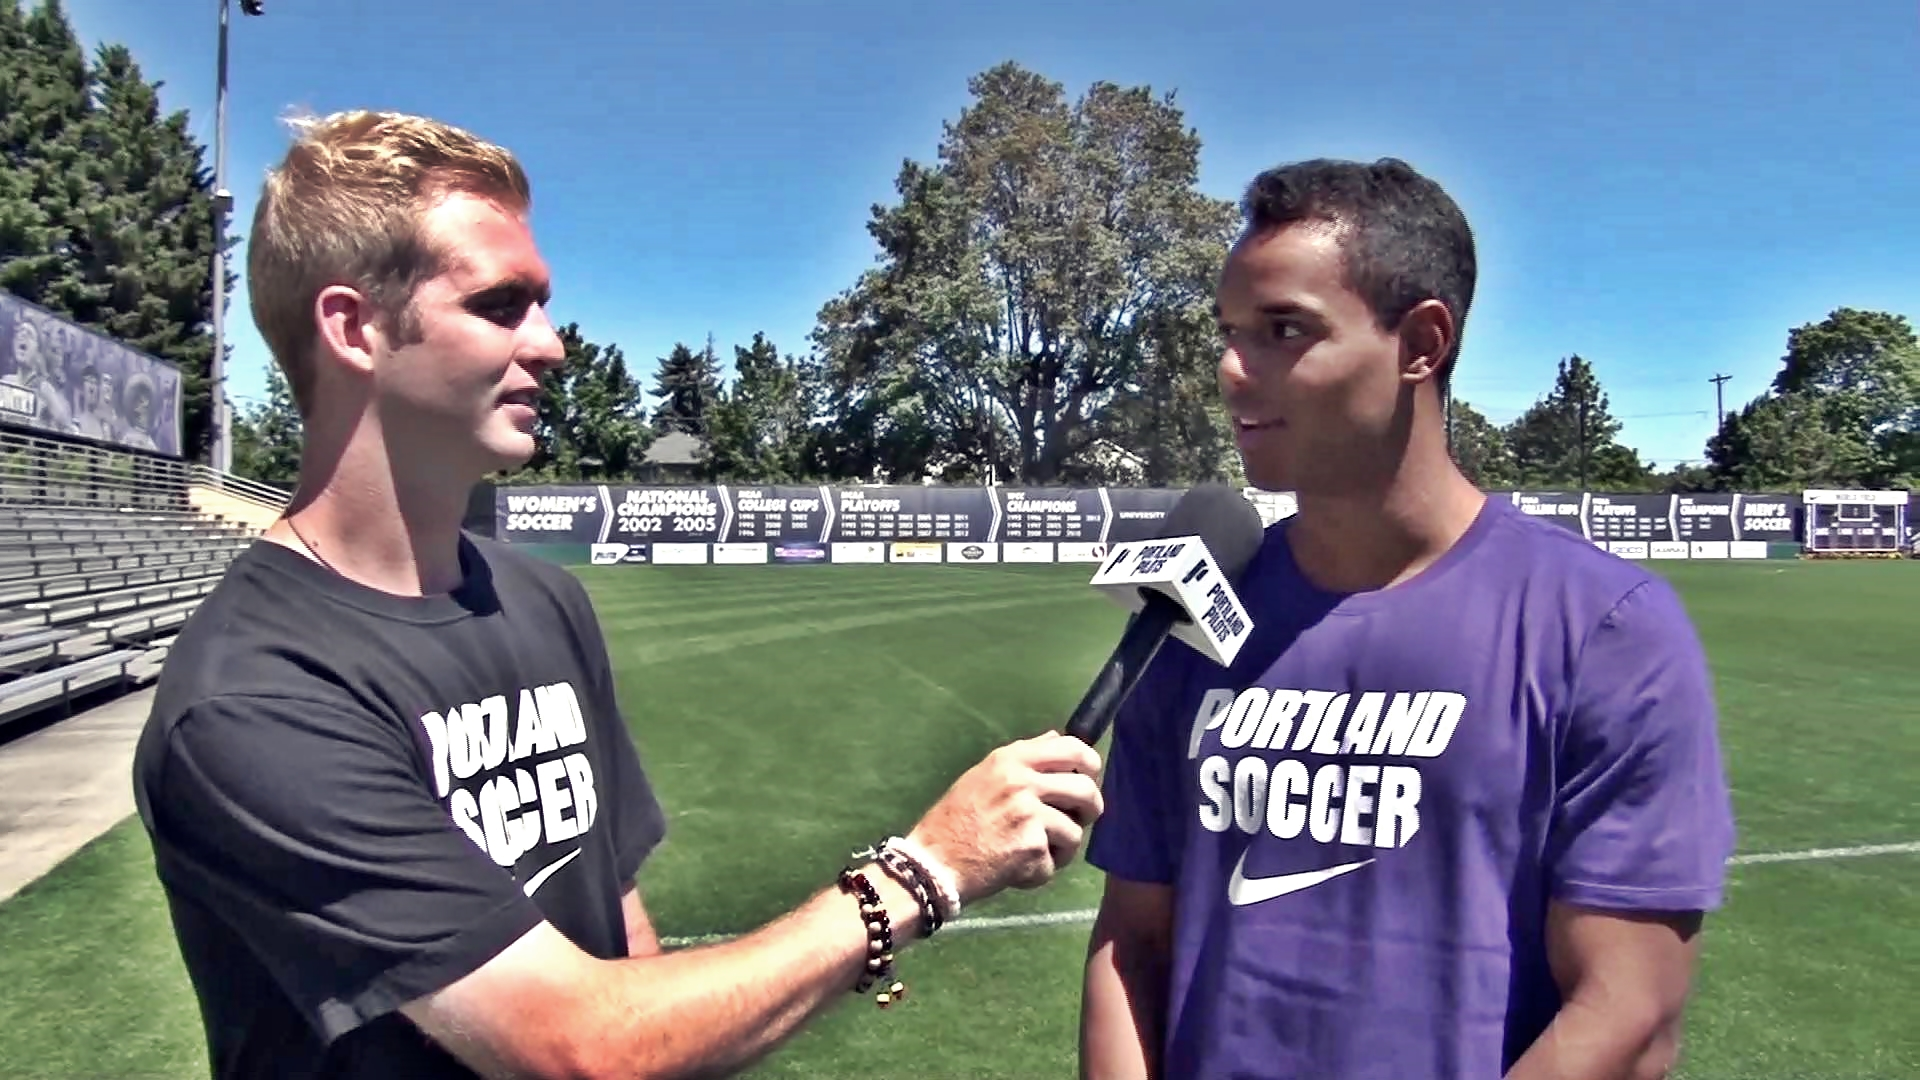 Lionel Mills Tells All About His Freshman Year at the University of Portland